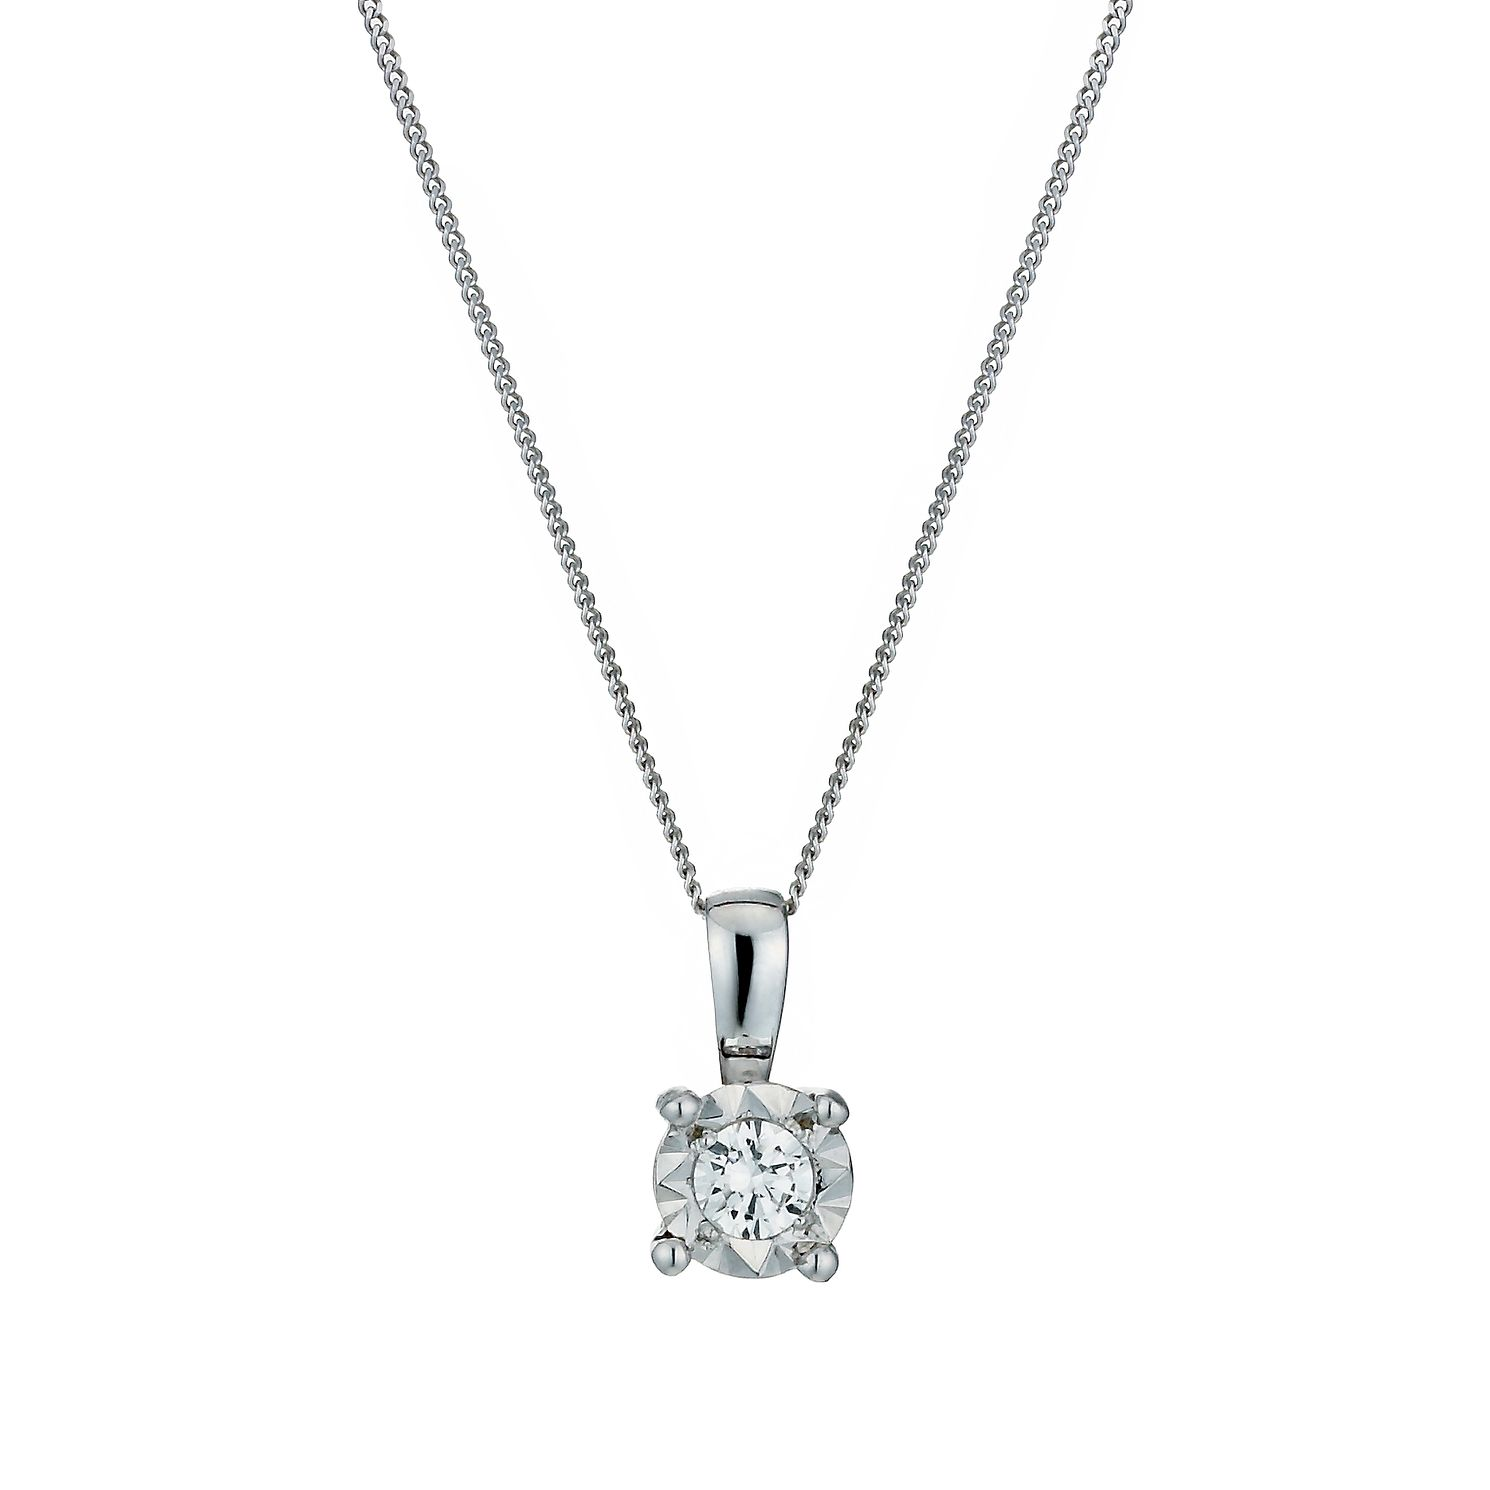 9ct White Gold Illusion 0.10ct Diamond Pendant Necklace - Product number 1020951